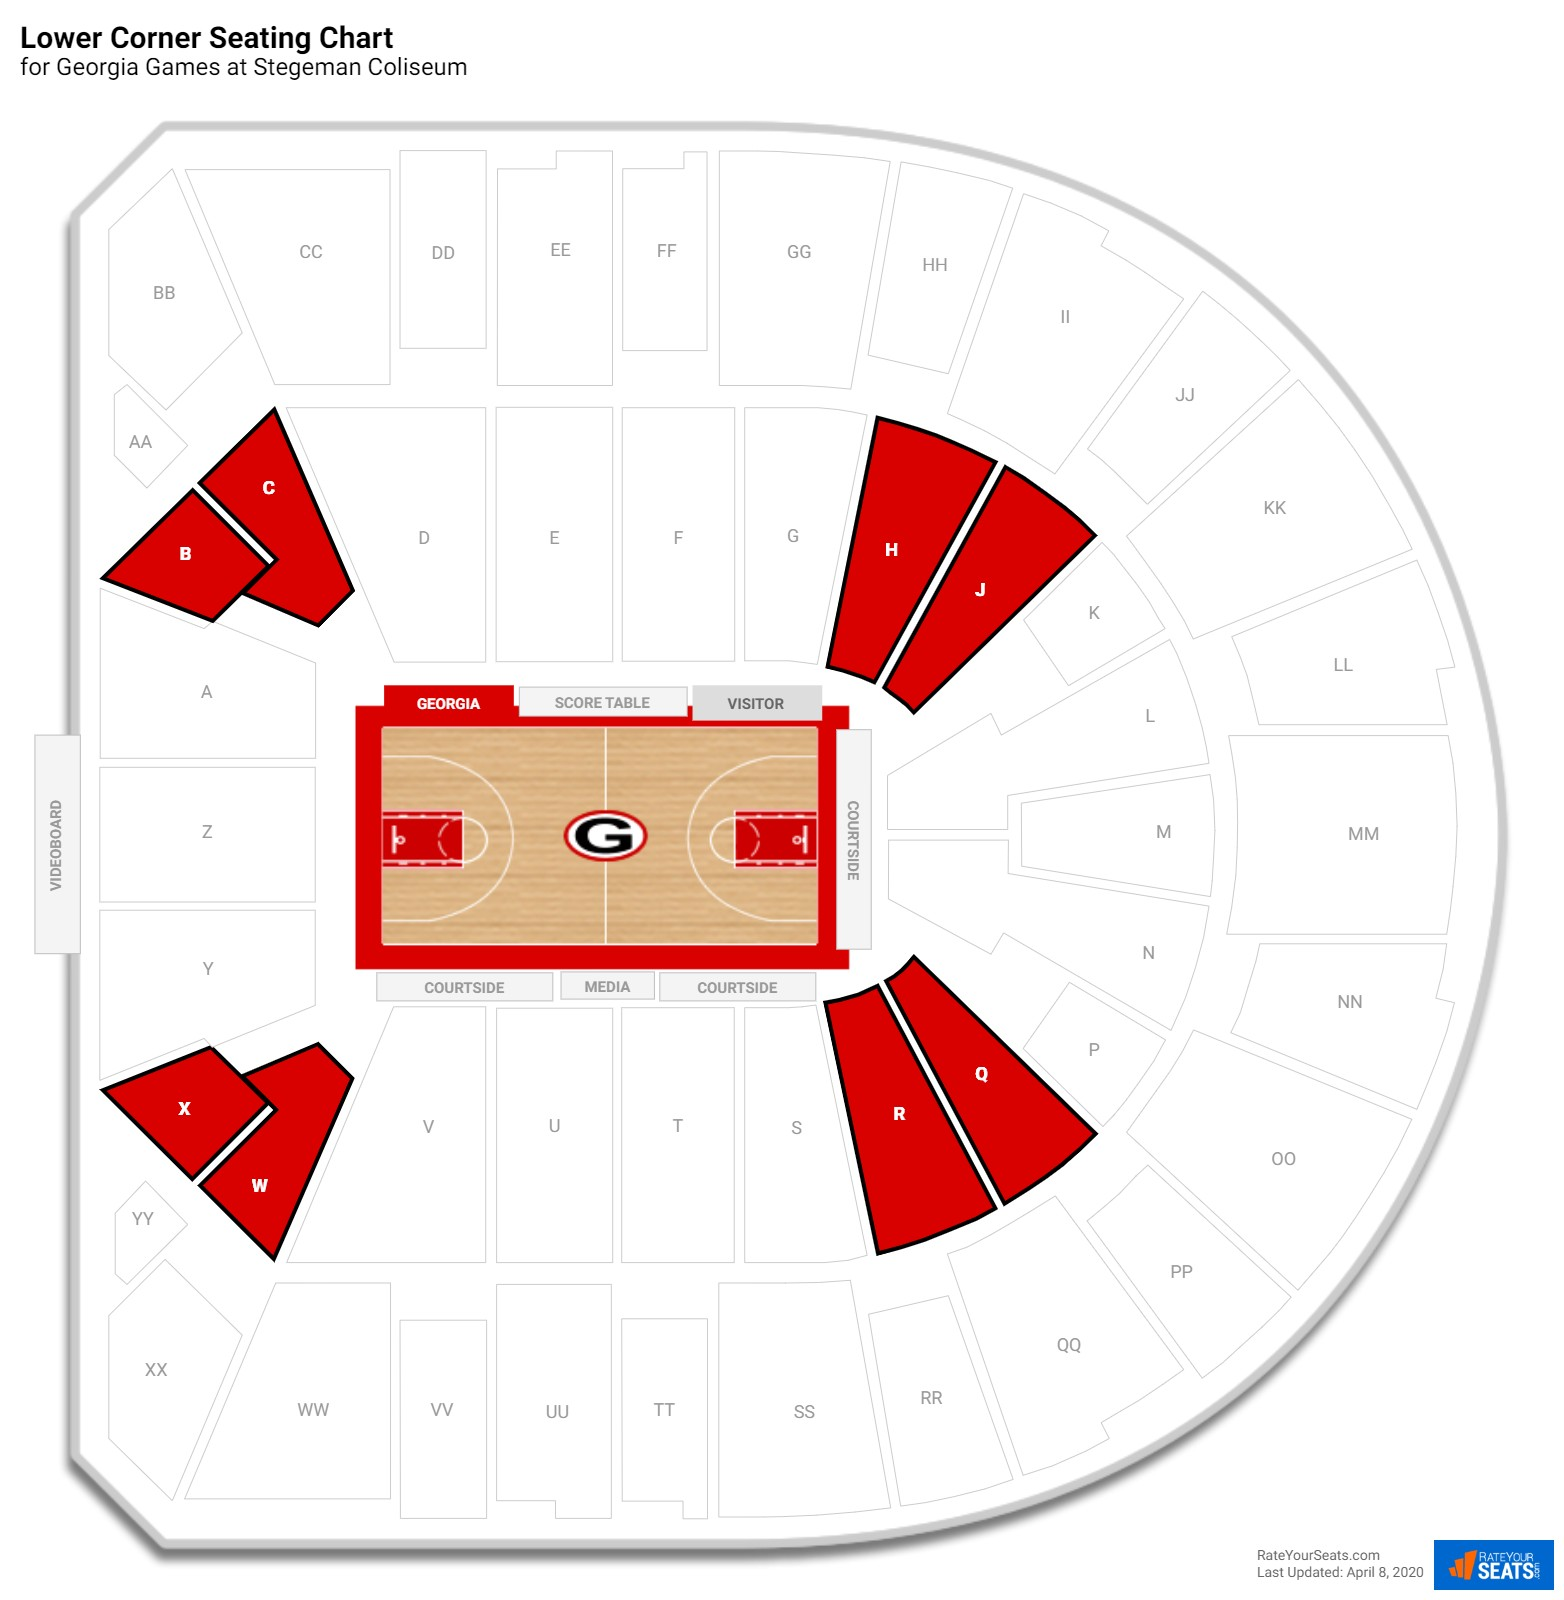 Stegeman Coliseum Lower Corner seating chart